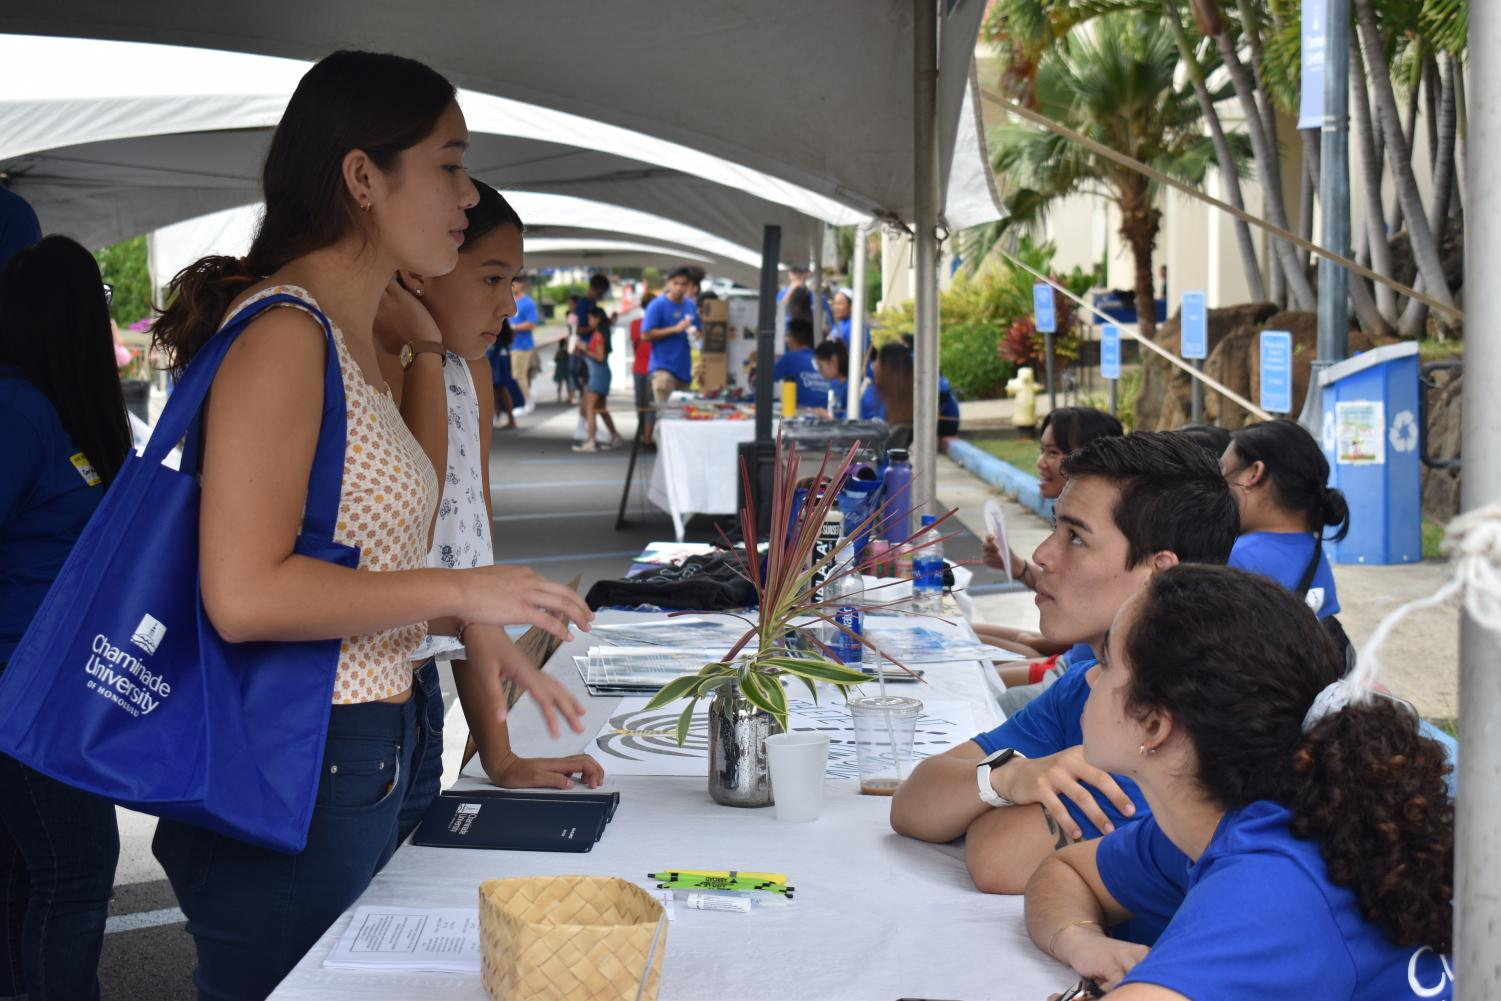 At 12:00 p.m., Chaminade University's second road was filled with interested high school students and their parents.